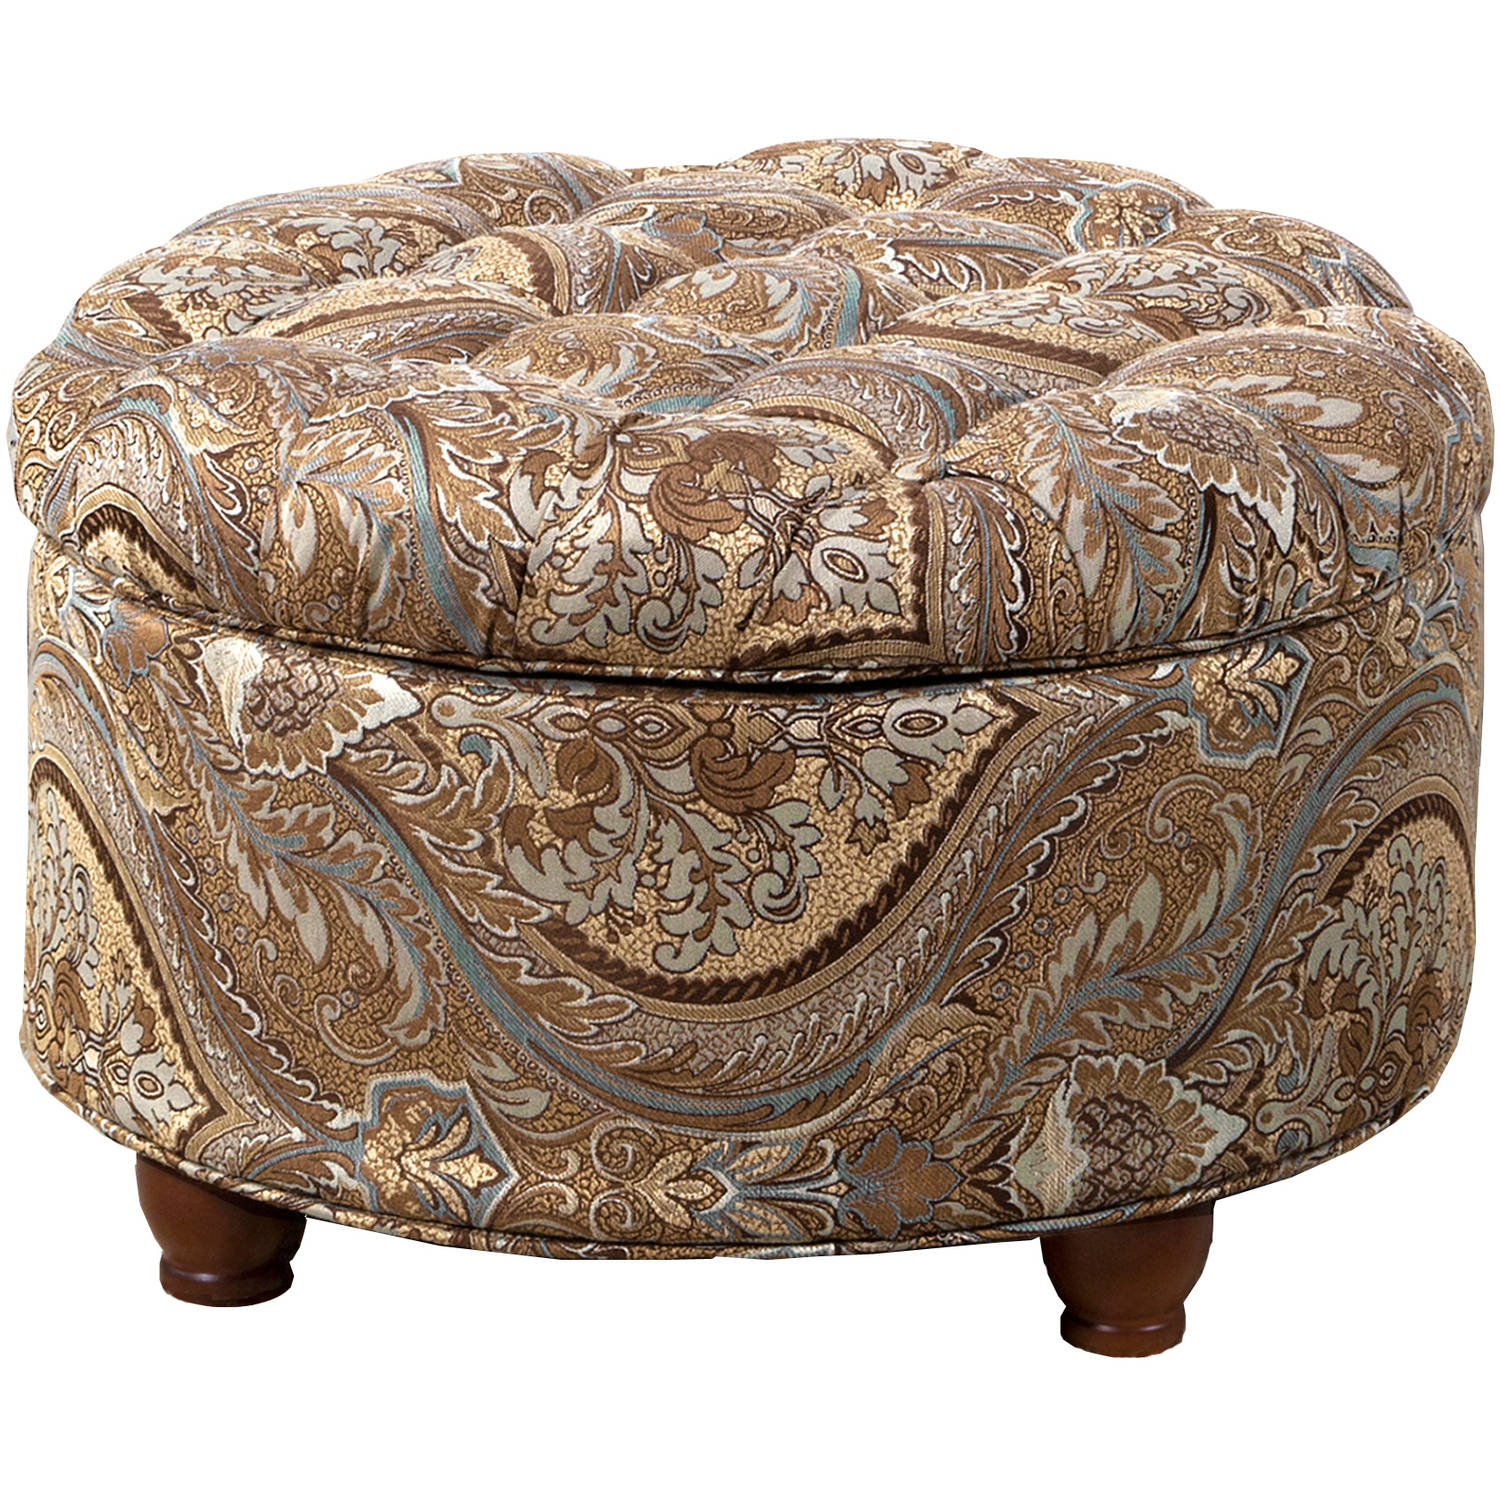 HomePop Large Tufted Round Storage Ottoman, Multiple Colors